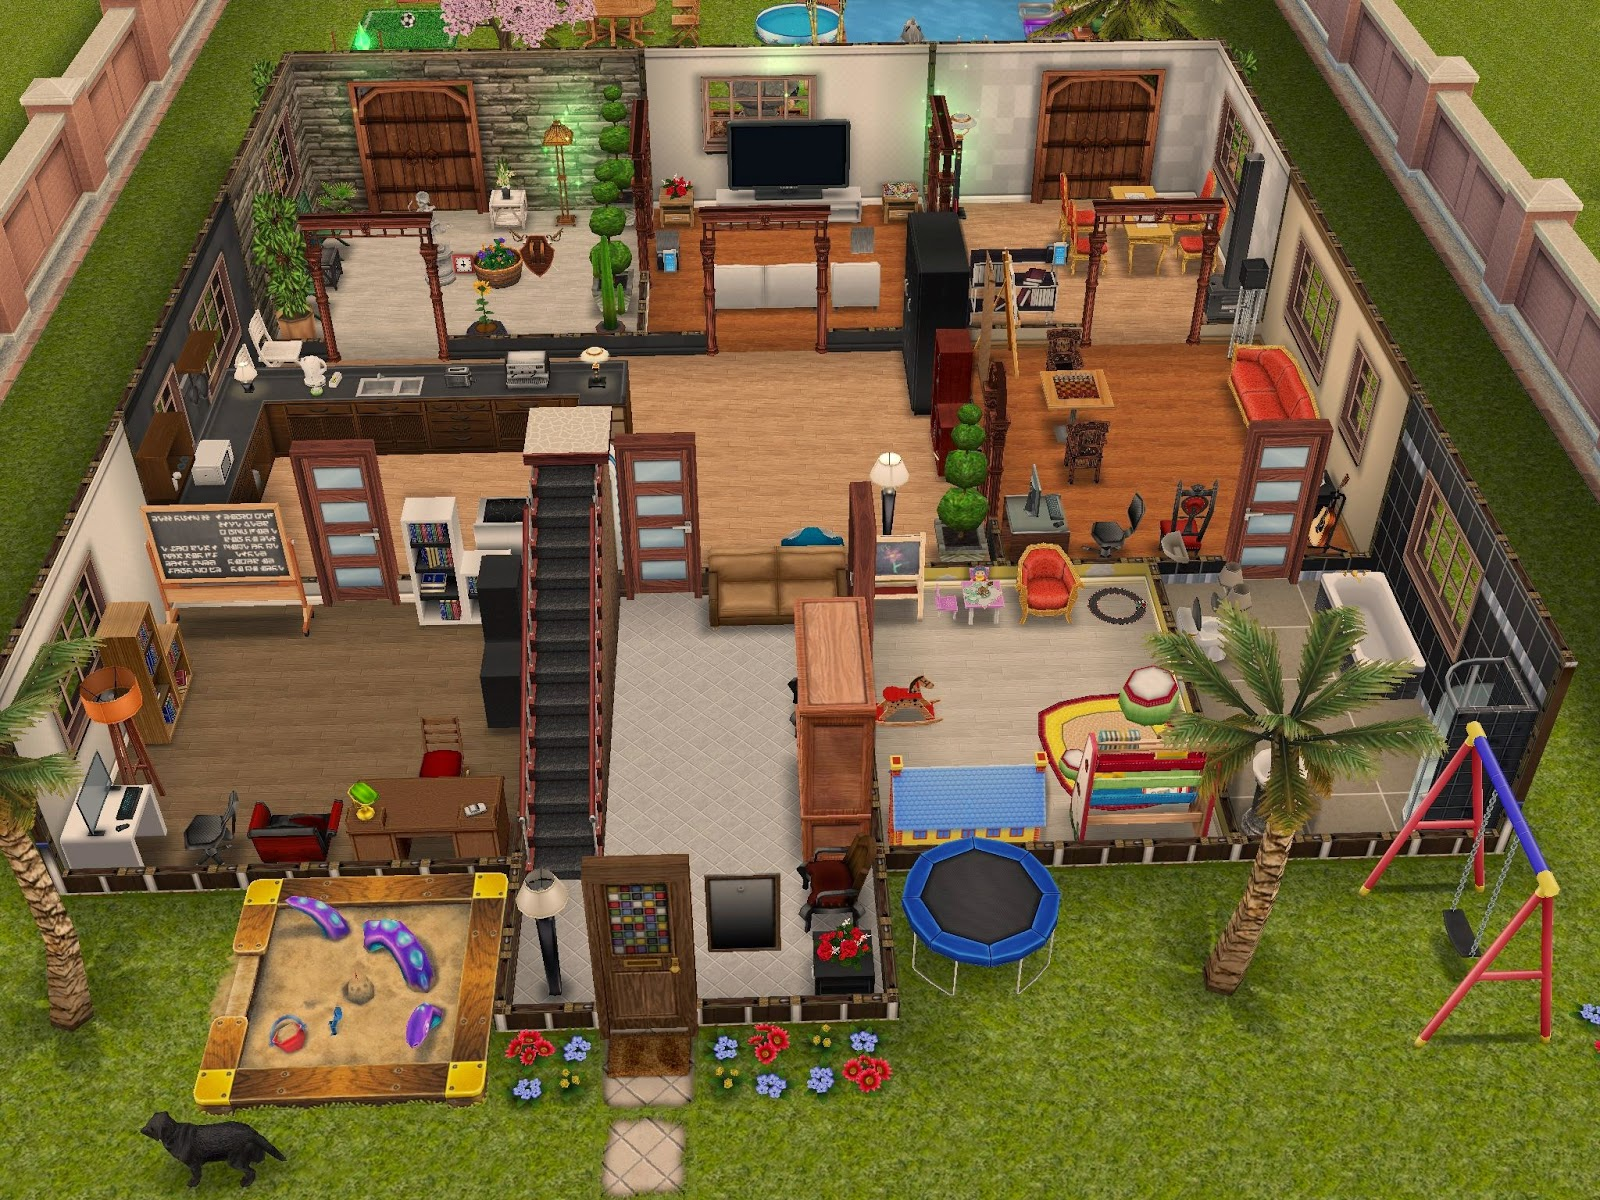 sims freeplay floor plans trend home design and decor